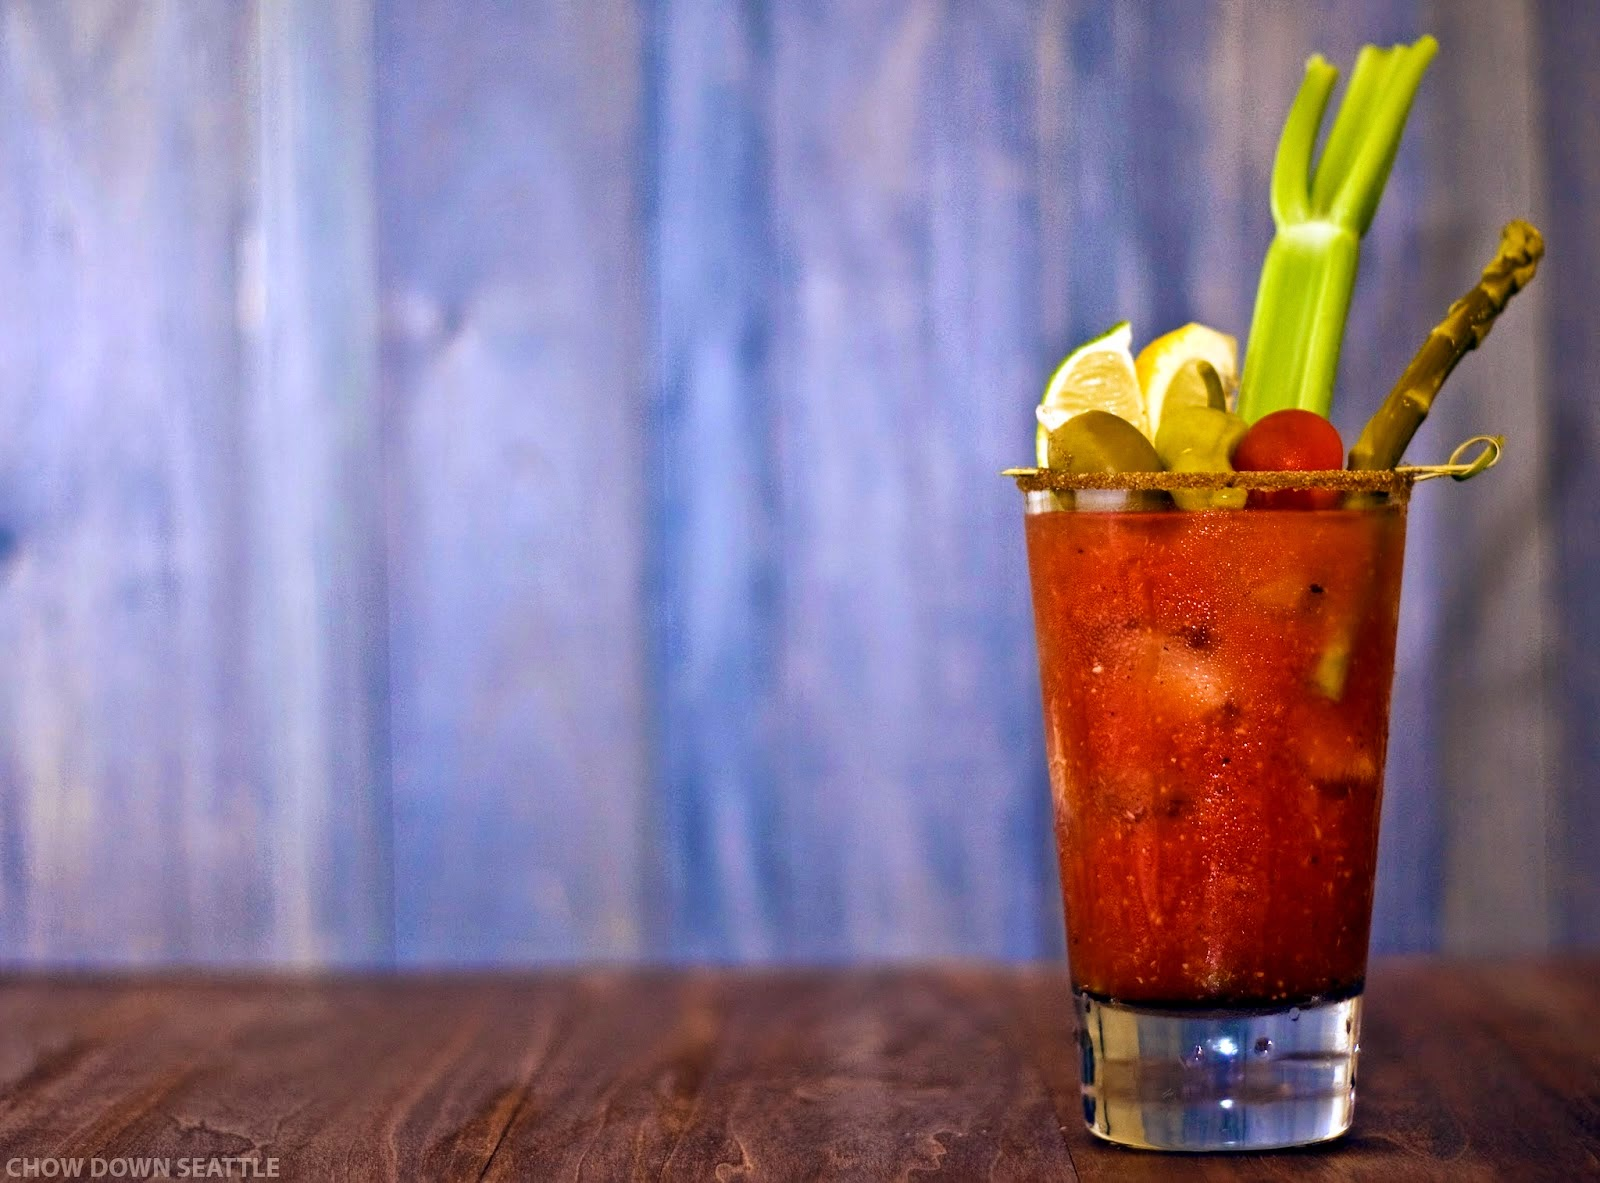 http://www.chowdownseattle.com/2014/08/drinks-classic-bloody-mary.html#uds-search-results